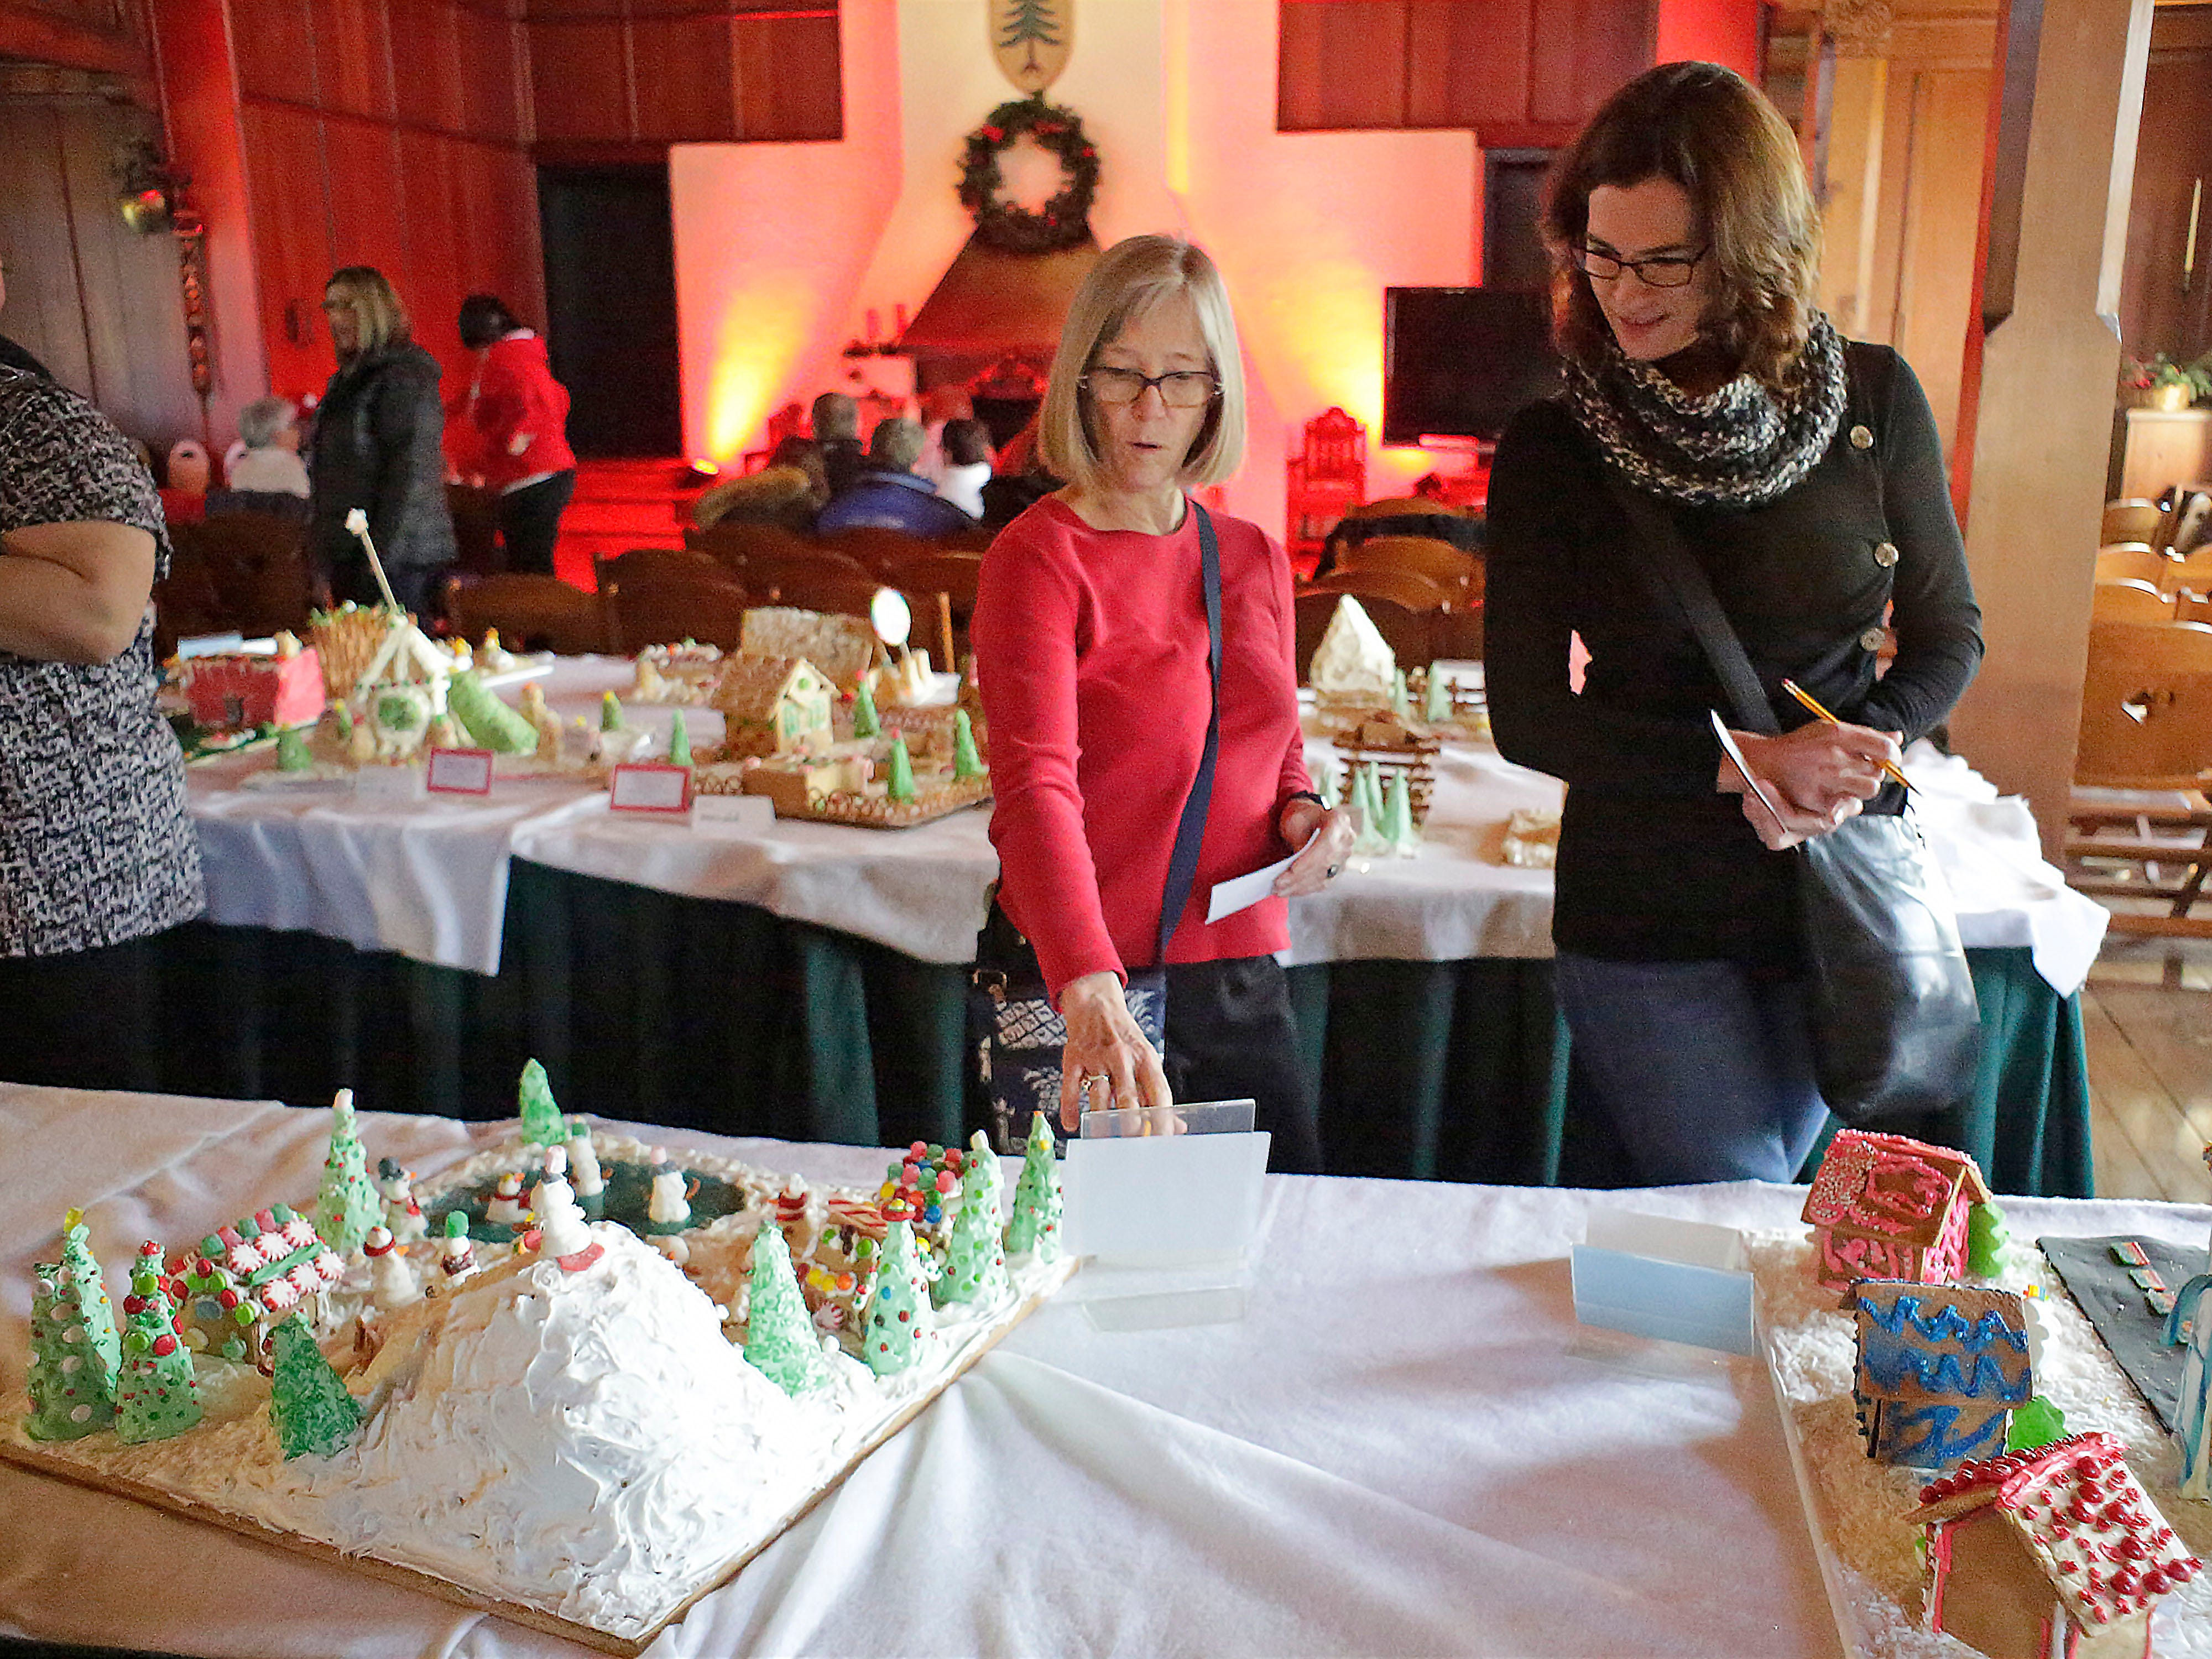 Sally Isely, left, and Stephani Newby, both  of Plymouth, Wis., look over gingerbreads during the annual Waelderhaus Gingerbread Festival, Saturday, December 8, 2018, in Kohler, Wis.